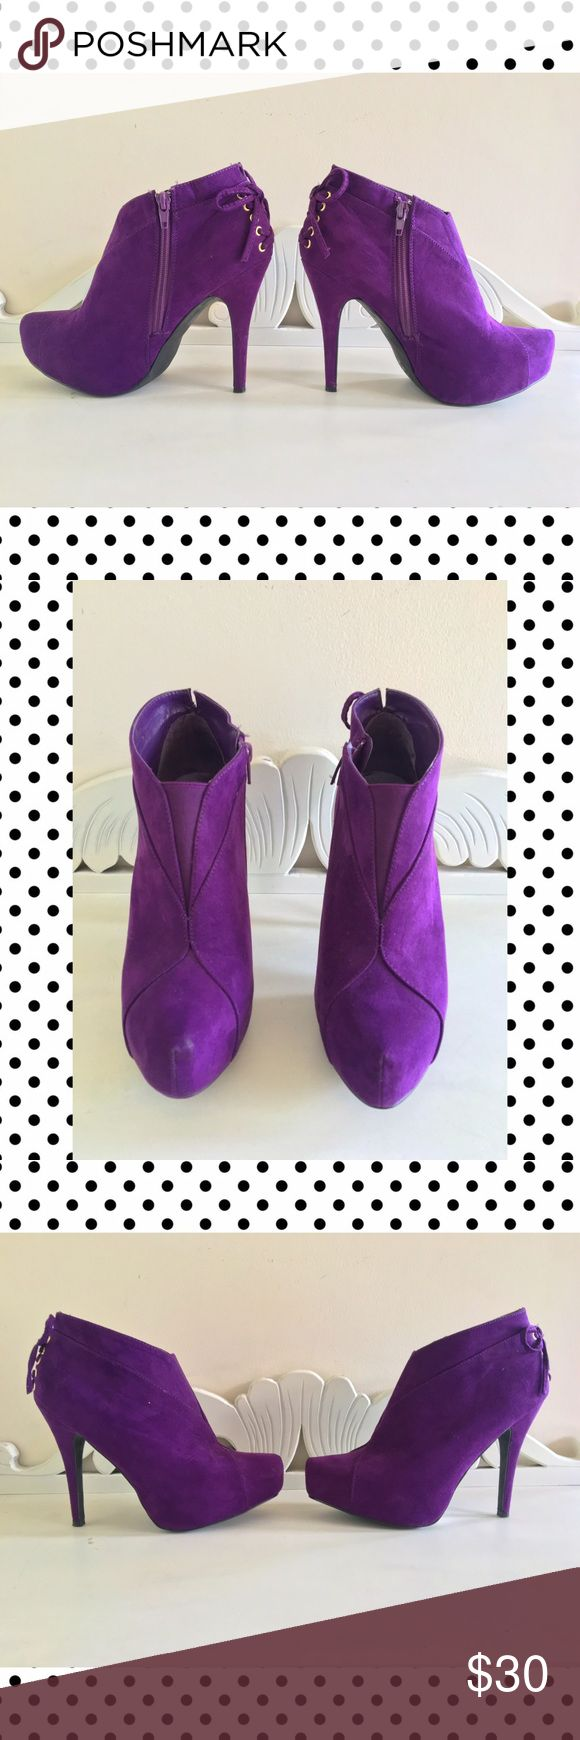 """Purple Suede Booties Shoe Dazzle Purple Suede Booties Side zipper closure. Back features corset style bow with eyelets. Shoes are in good condition, little bit of a wear mark on the tips but not very noticeable. Heel measures 4-5"""". Size 8 US Shoe Dazzle Shoes Ankle Boots & Booties"""